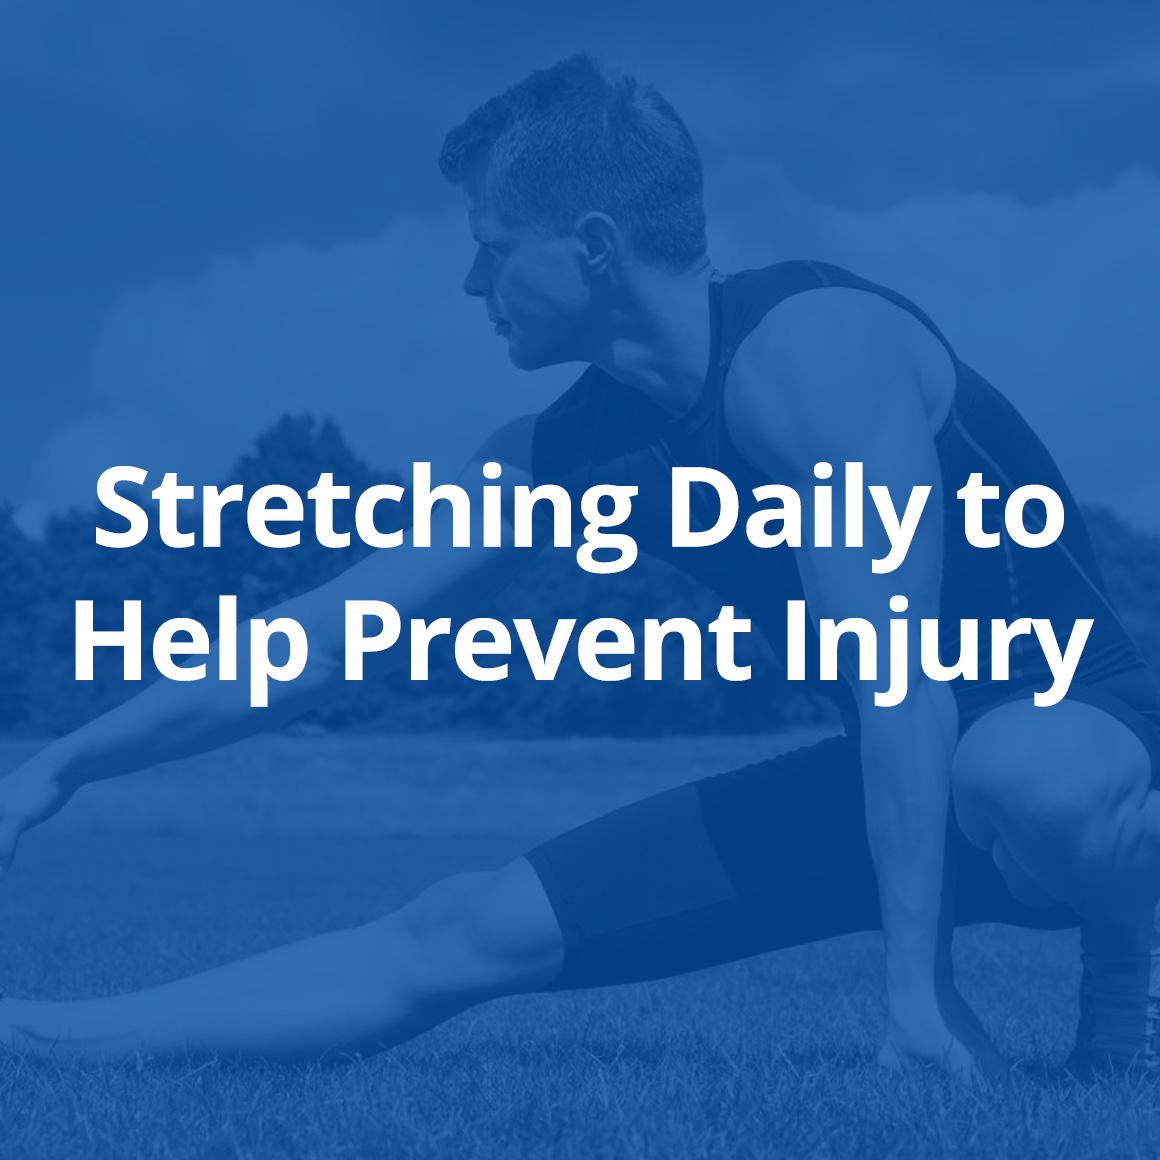 stretching-daily-prevents-injury-blog-post